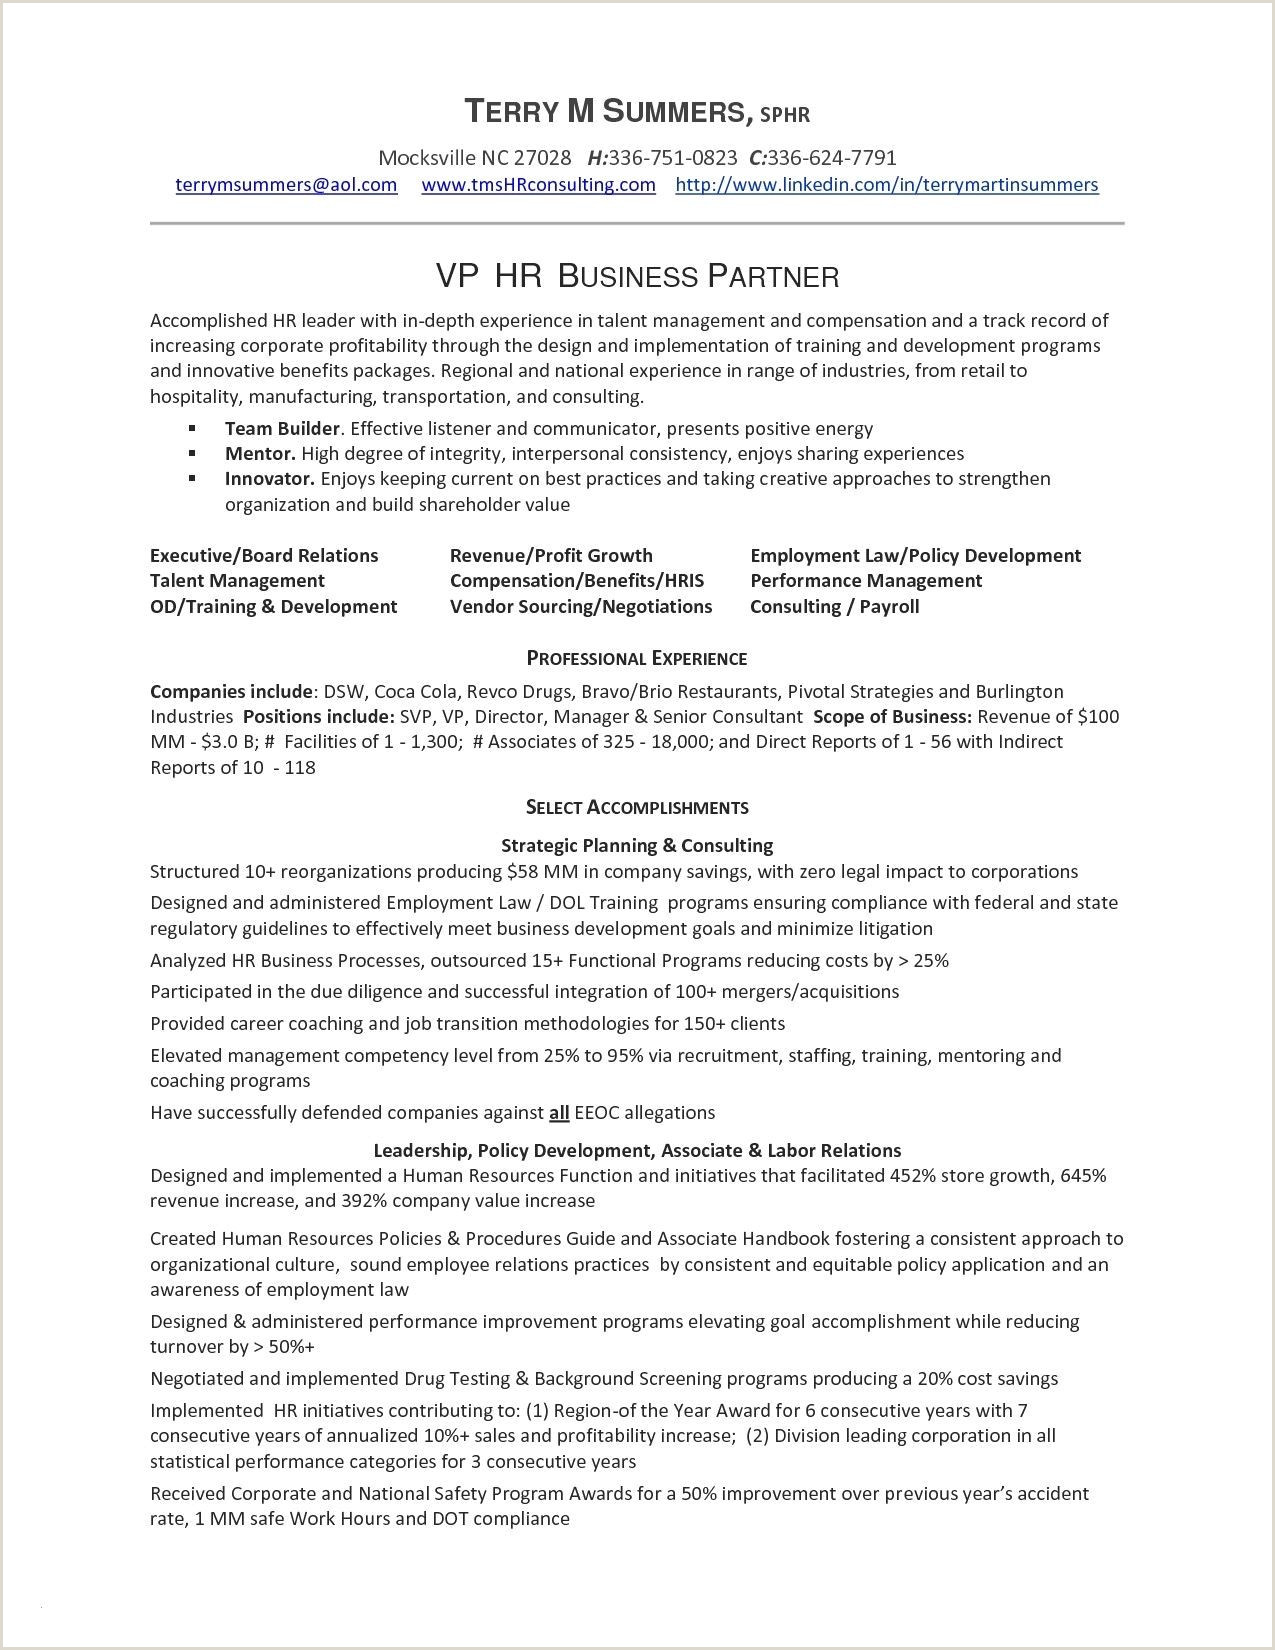 Sample Resume Format For Hr Executive New Pin By Joanna